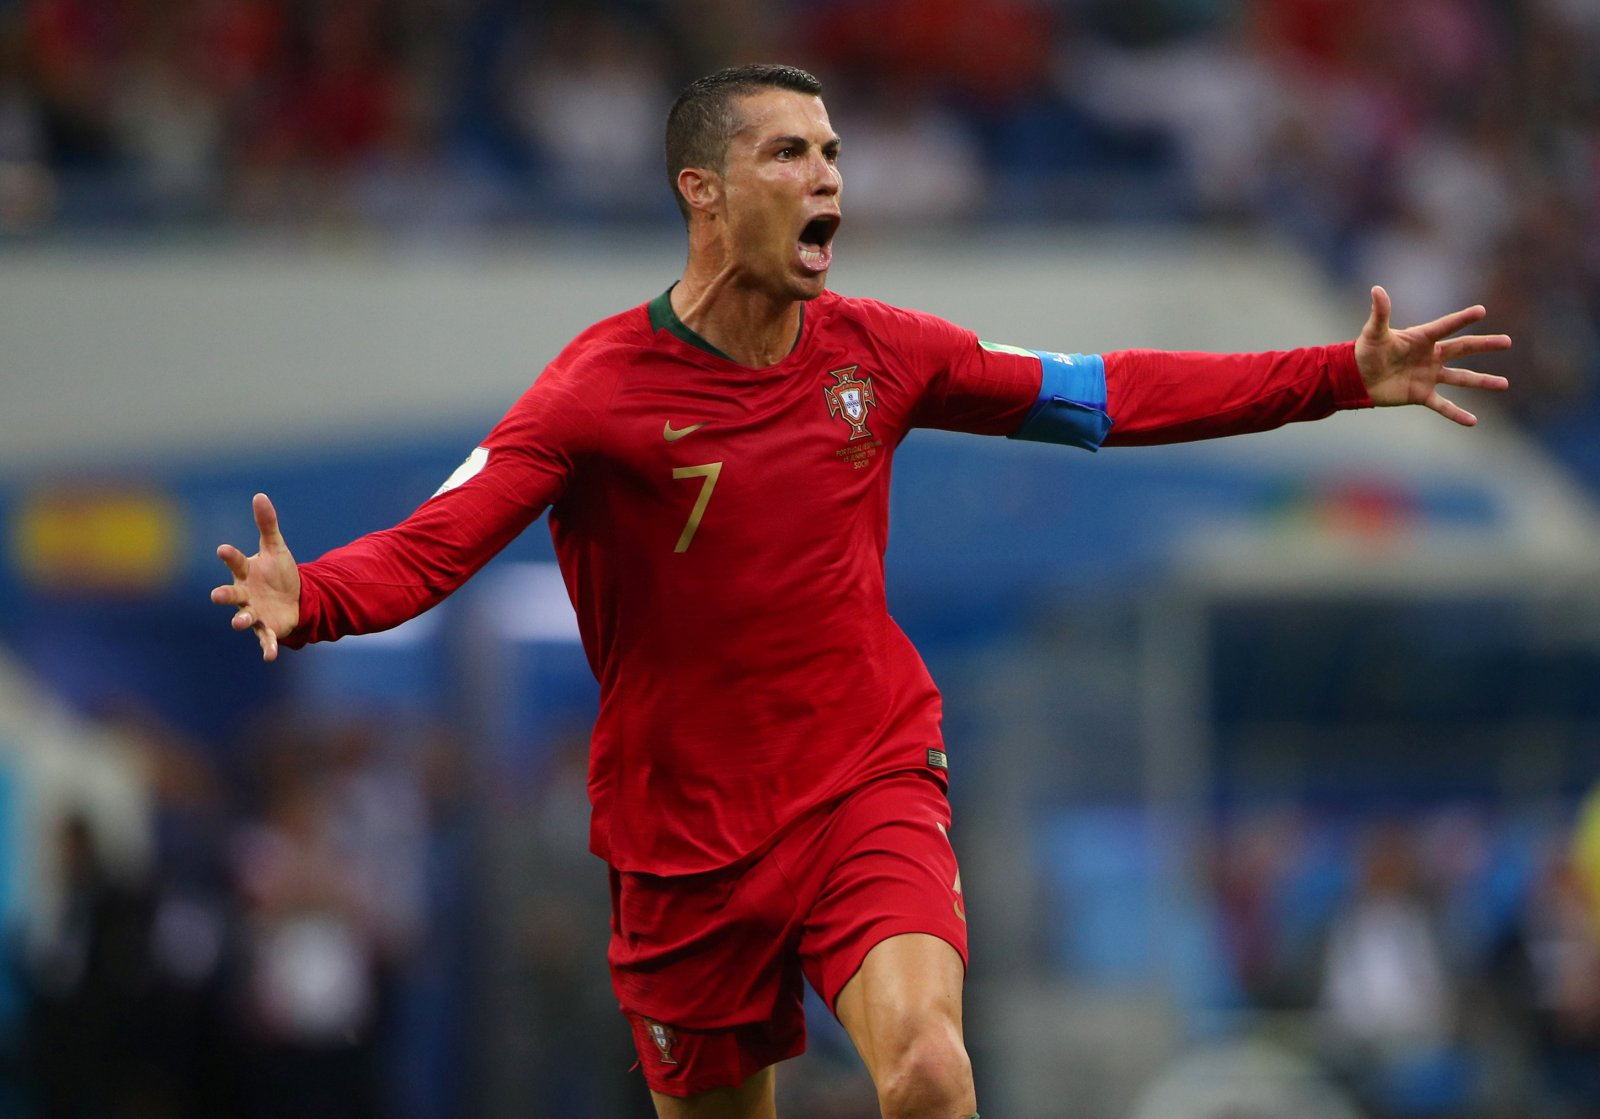 Cristiano Ronaldo celebrates scoring a hat trick against Spain at the 2018 World Cup